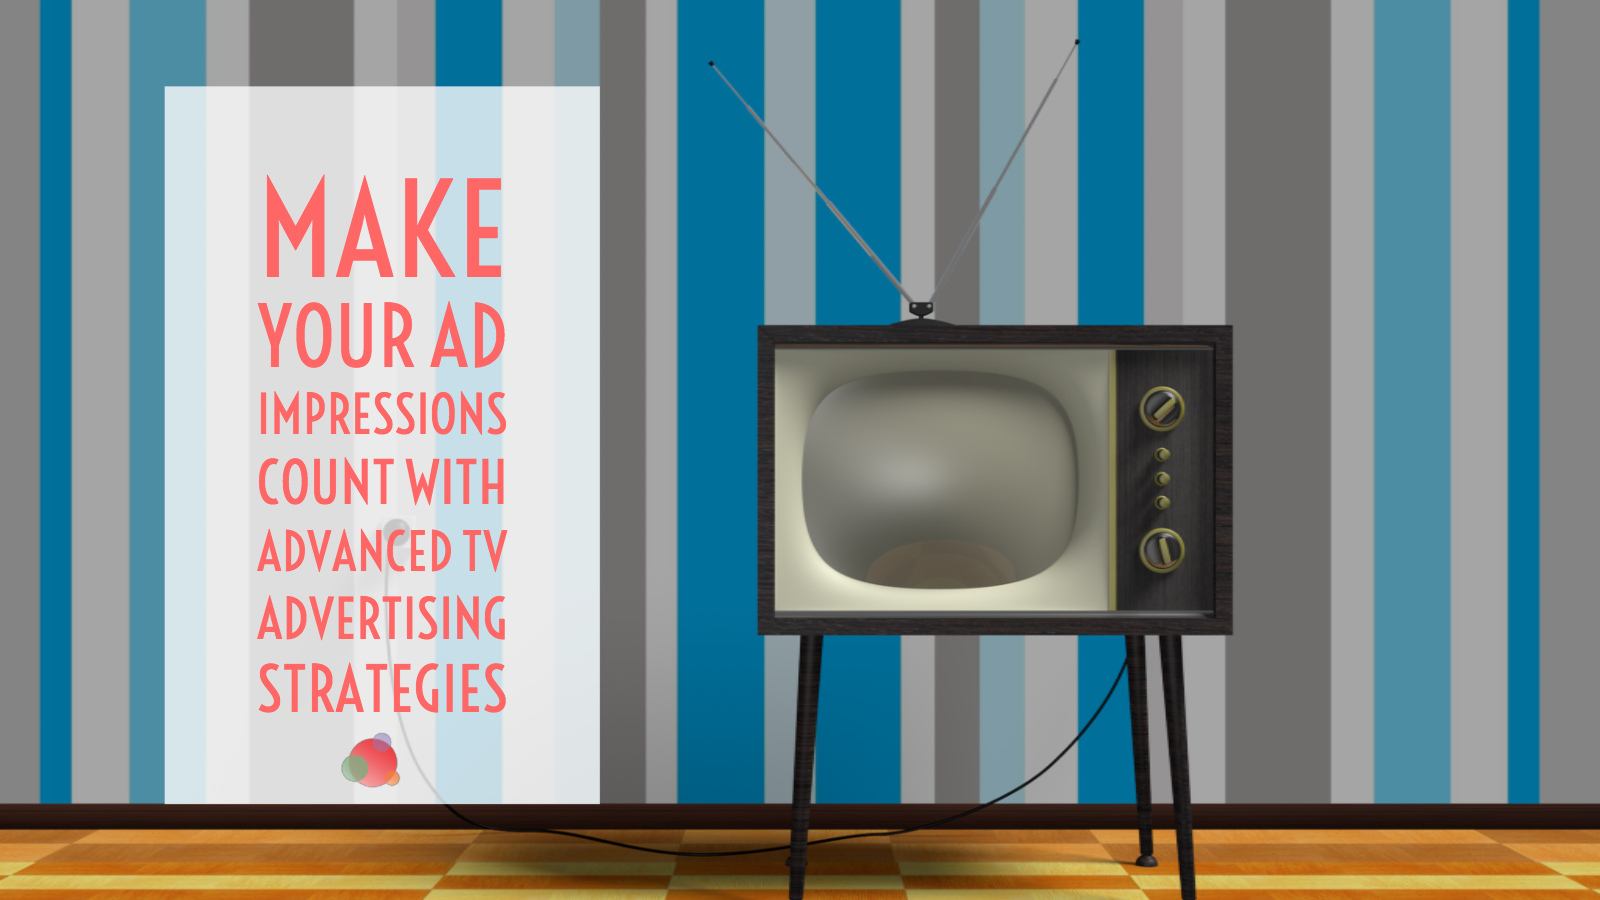 Make Ad Impressions Count with Advanced TV Strategies